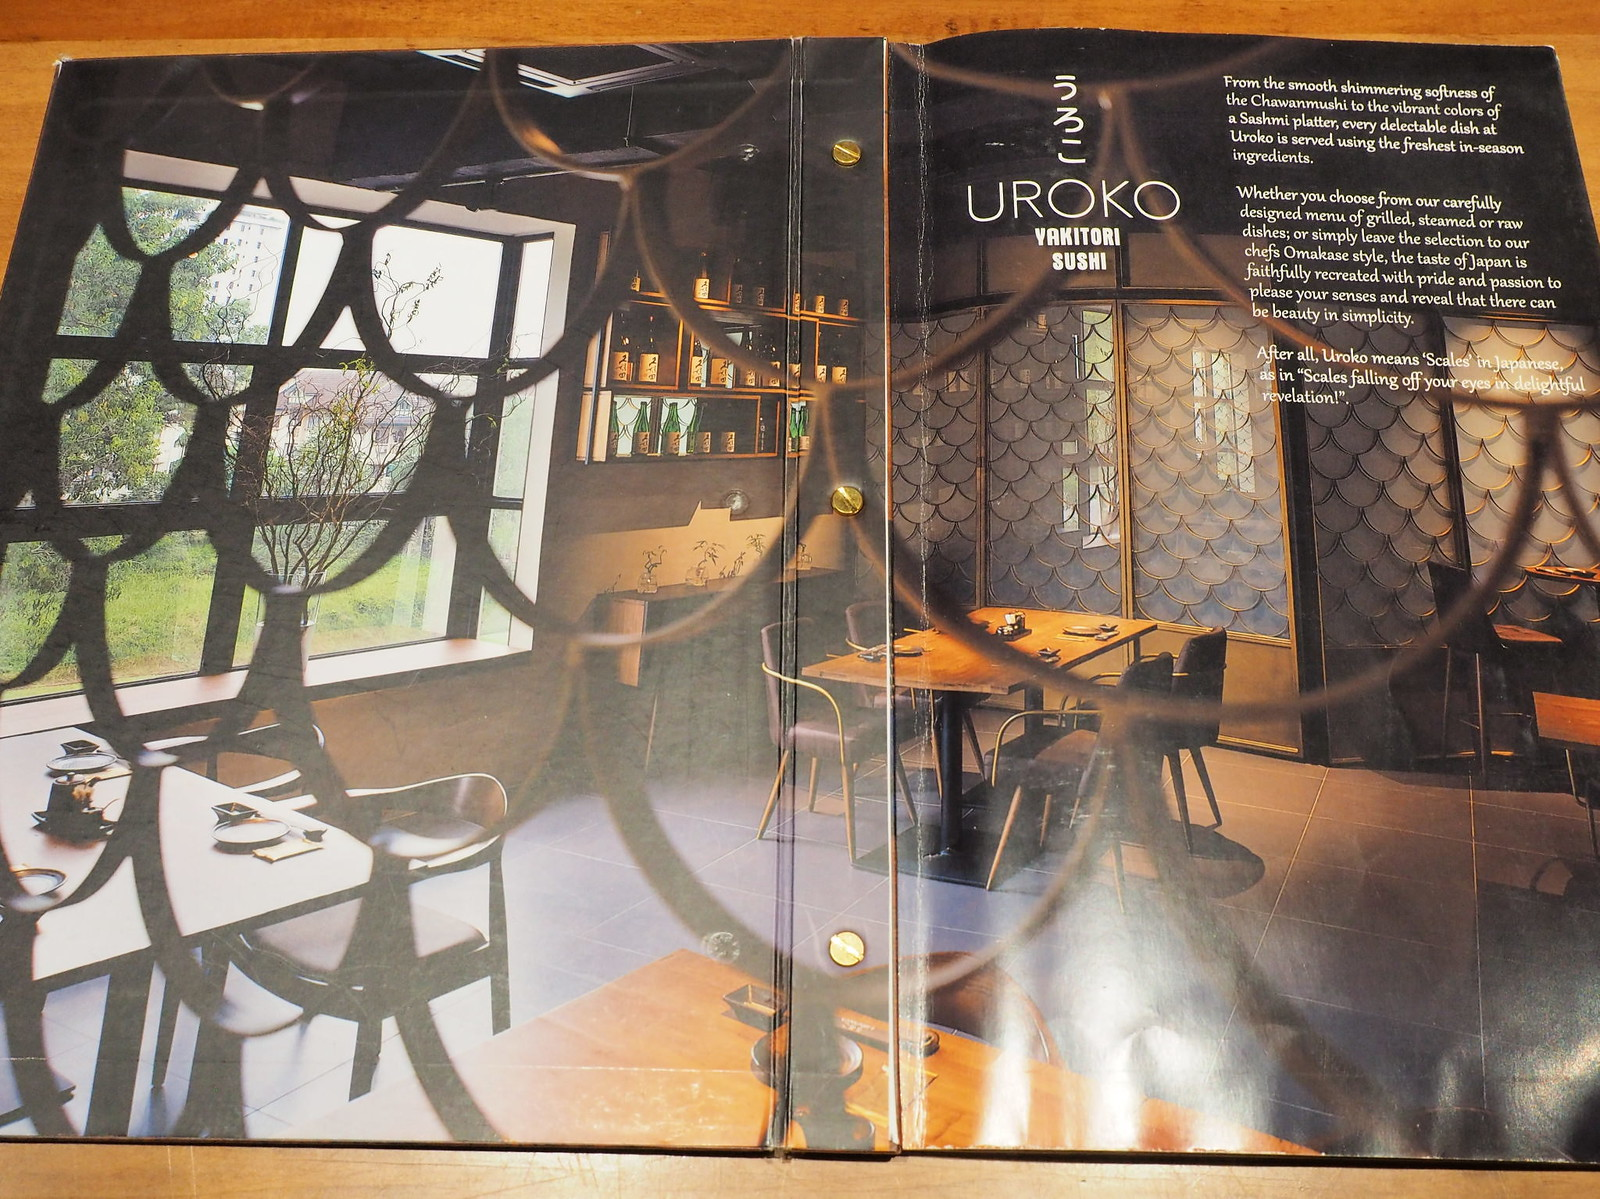 Menu showing the interior of Uroko Japanese Cuisine Restaurant